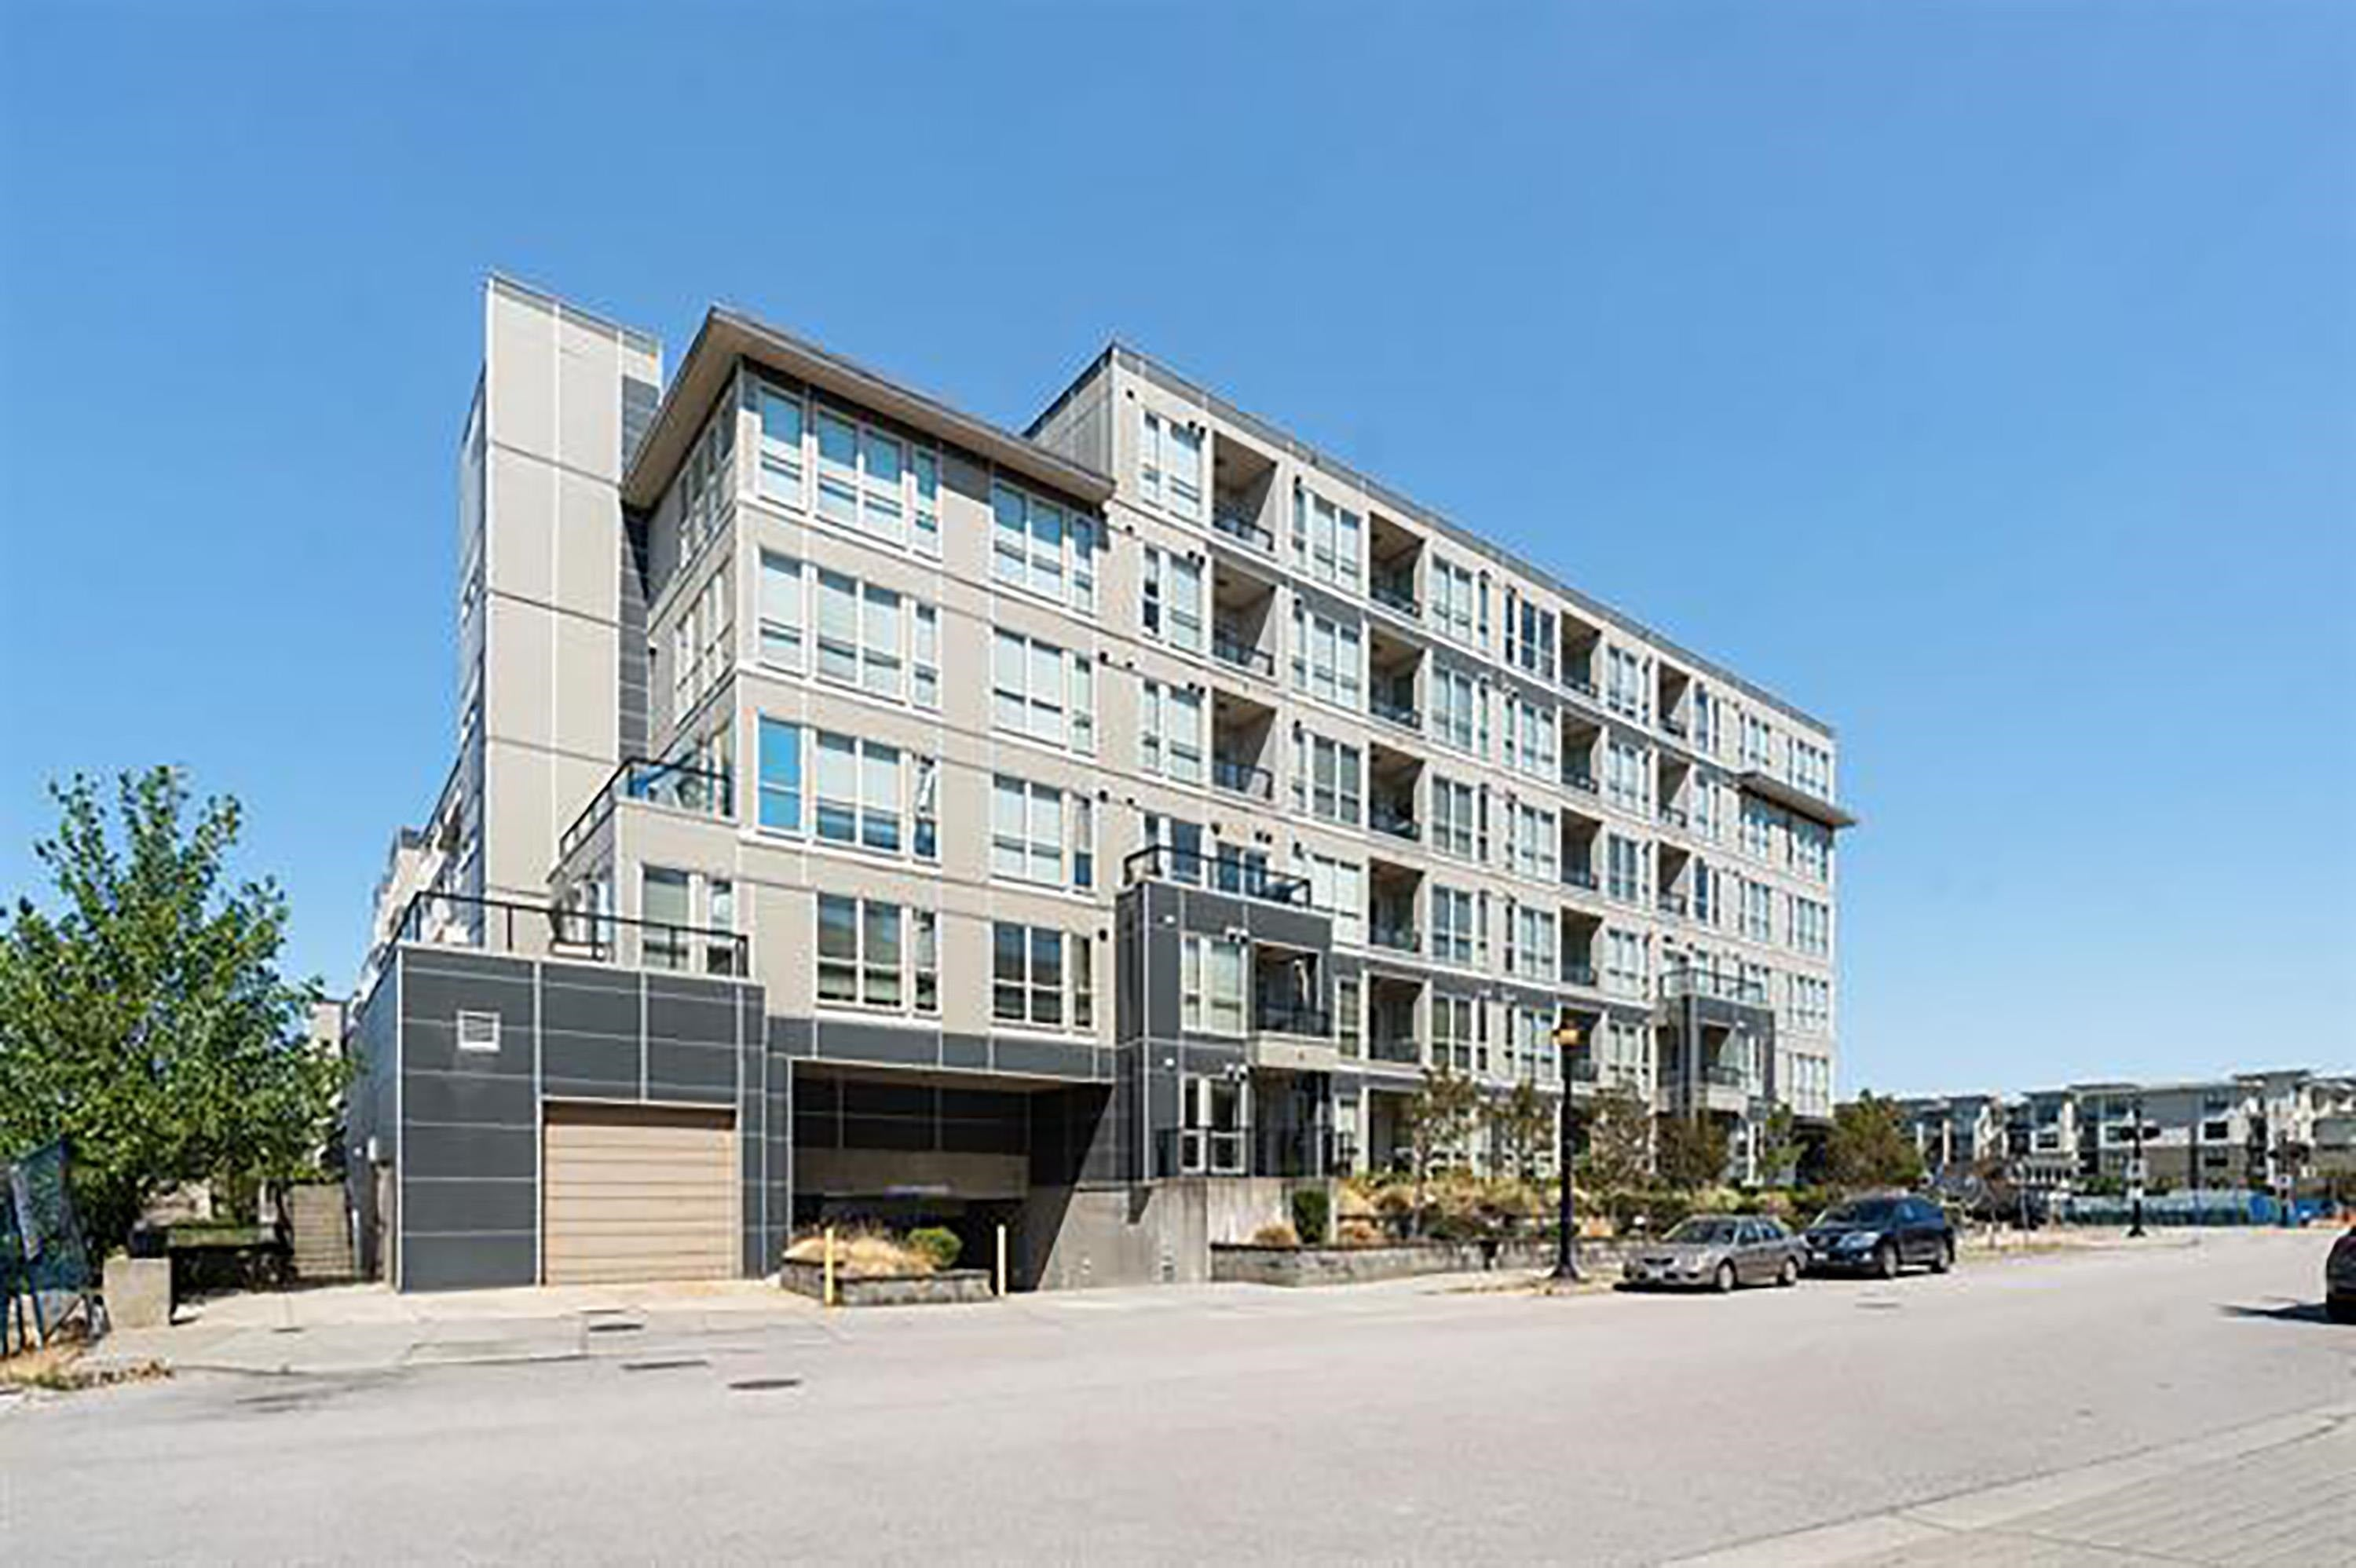 595 4133 STOLBERG STREET - West Cambie Apartment/Condo for sale, 2 Bedrooms (R2626110)